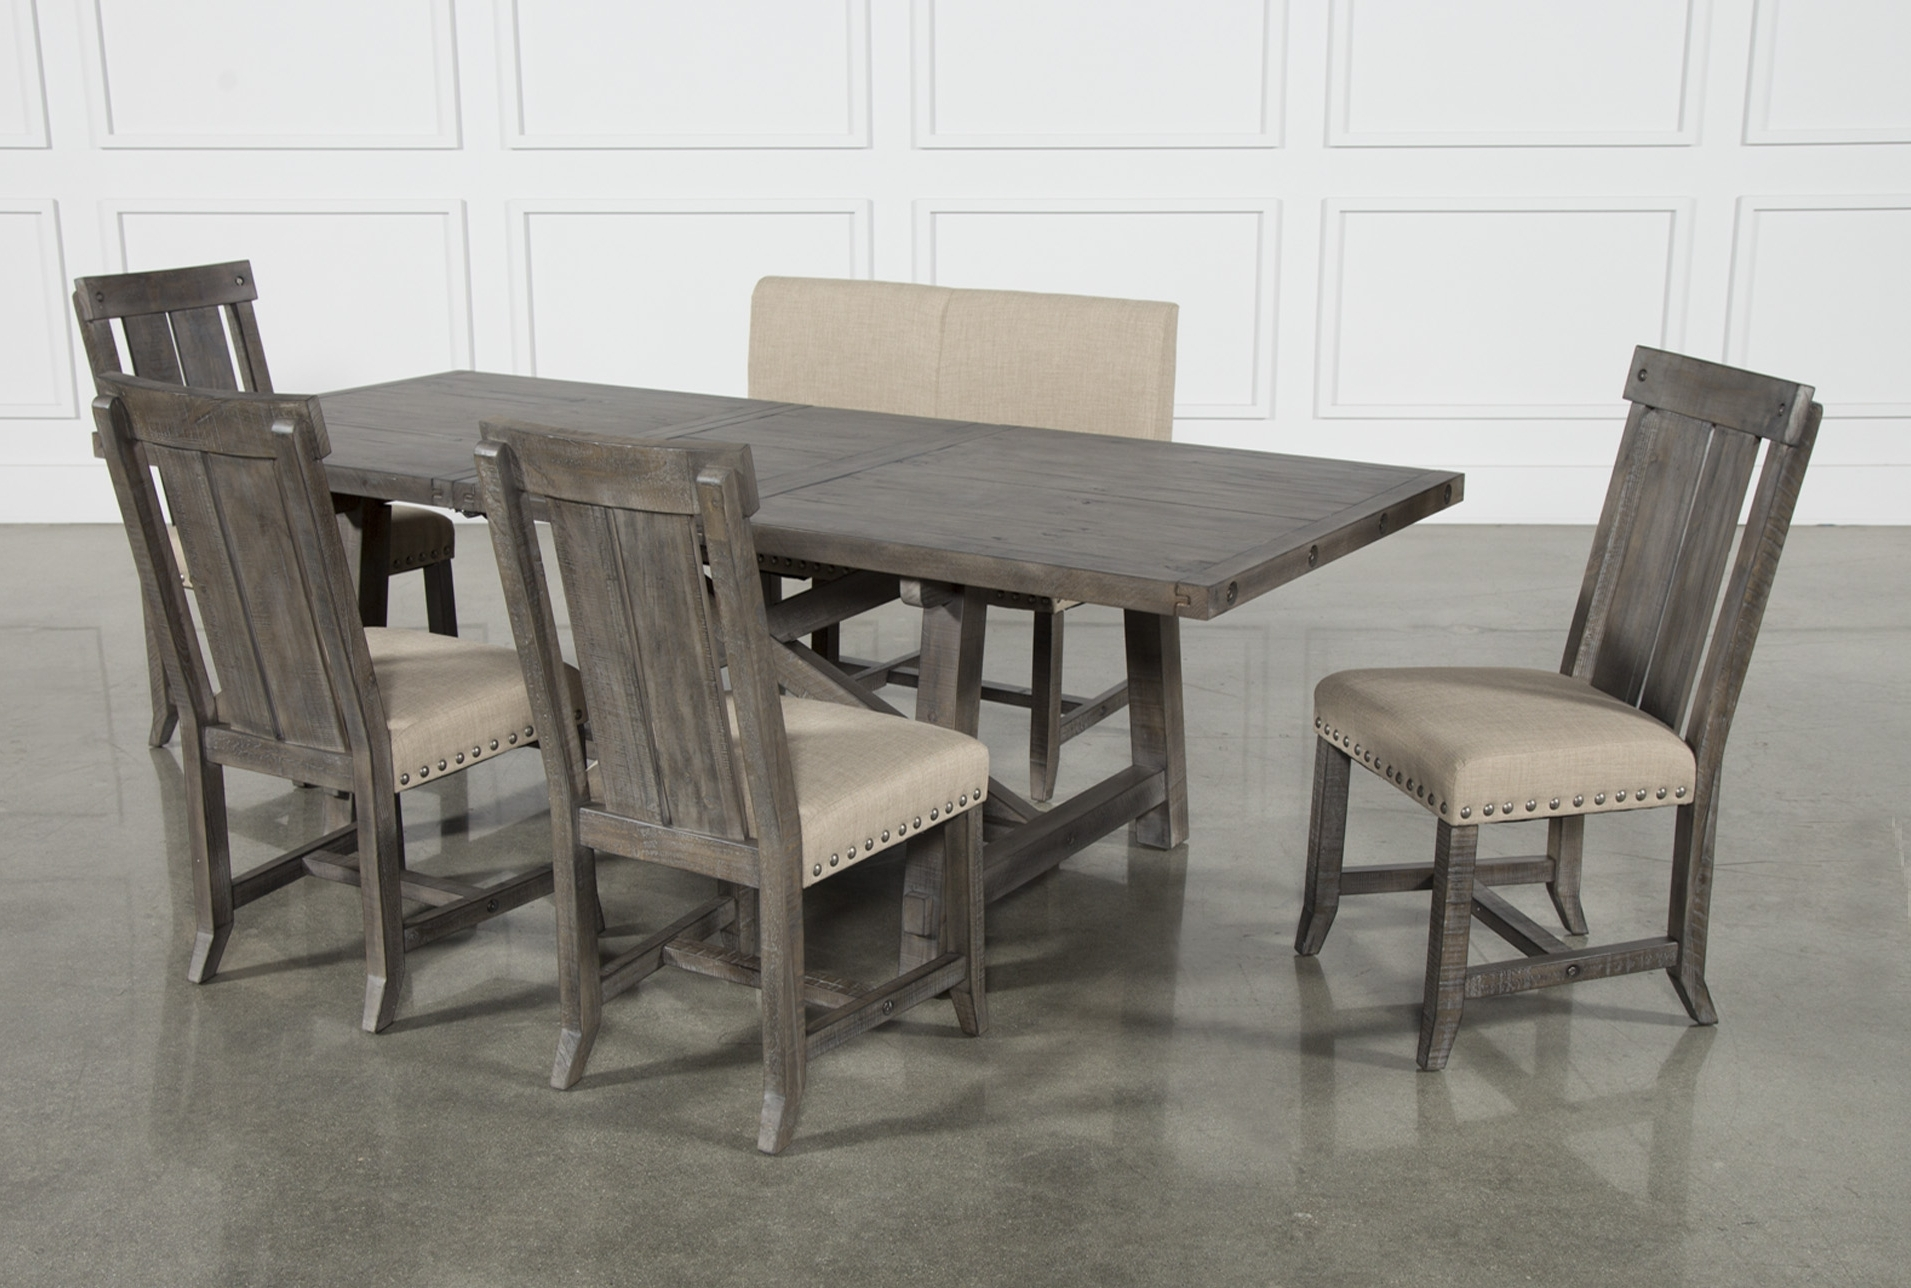 Besteneer Rectangular Dining Room Table Dark Gray – Signat With Regard To Most Recently Released Jaxon Grey Round Extension Dining Tables (Gallery 14 of 25)